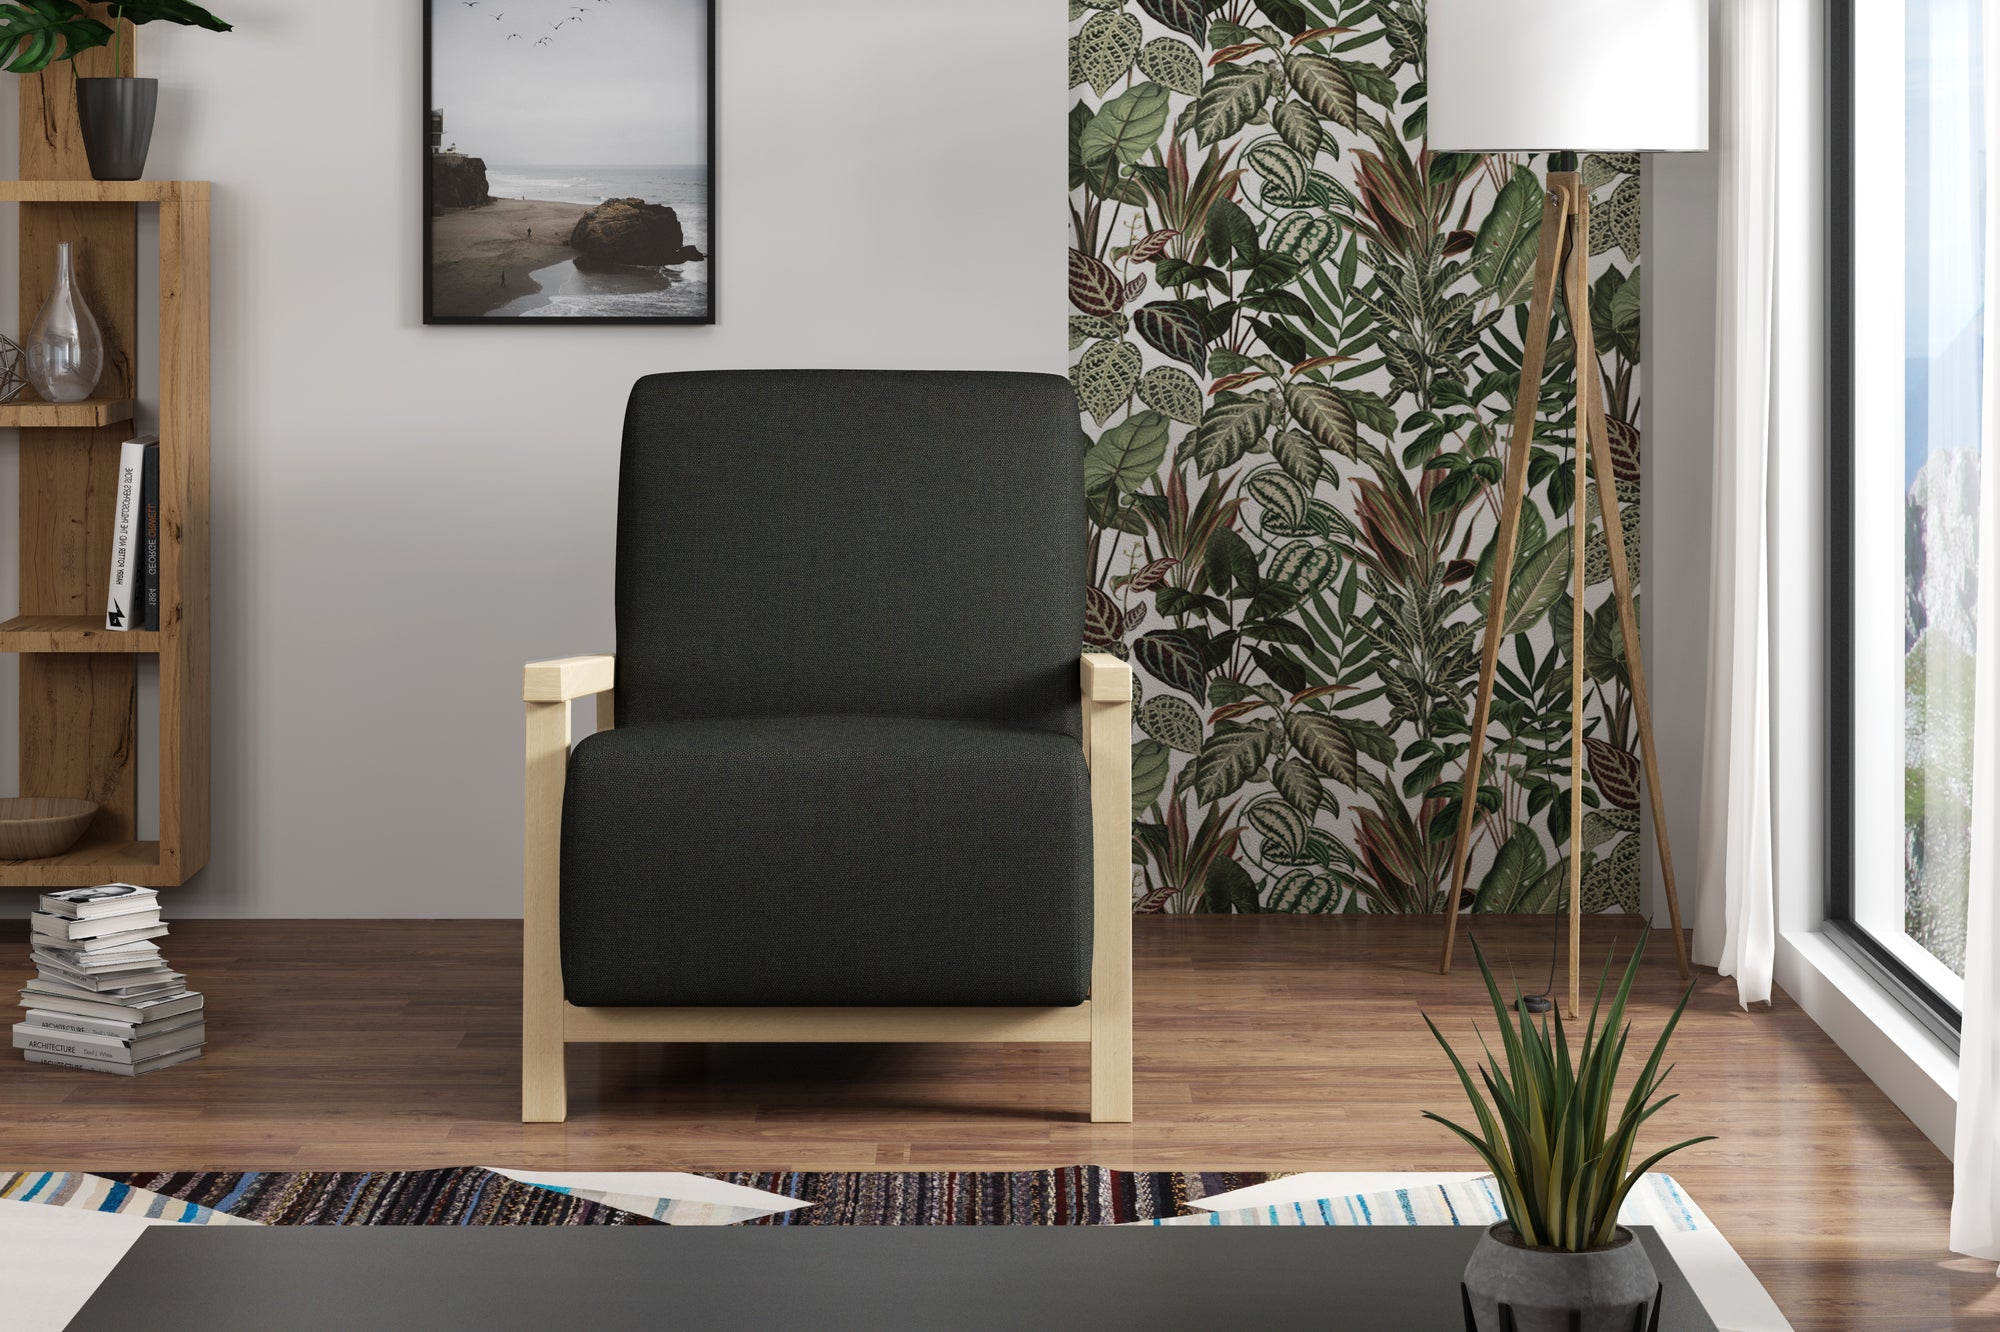 Fauteuil - Collection Art - 63 x 96 x 72 cm - Gris anthracite